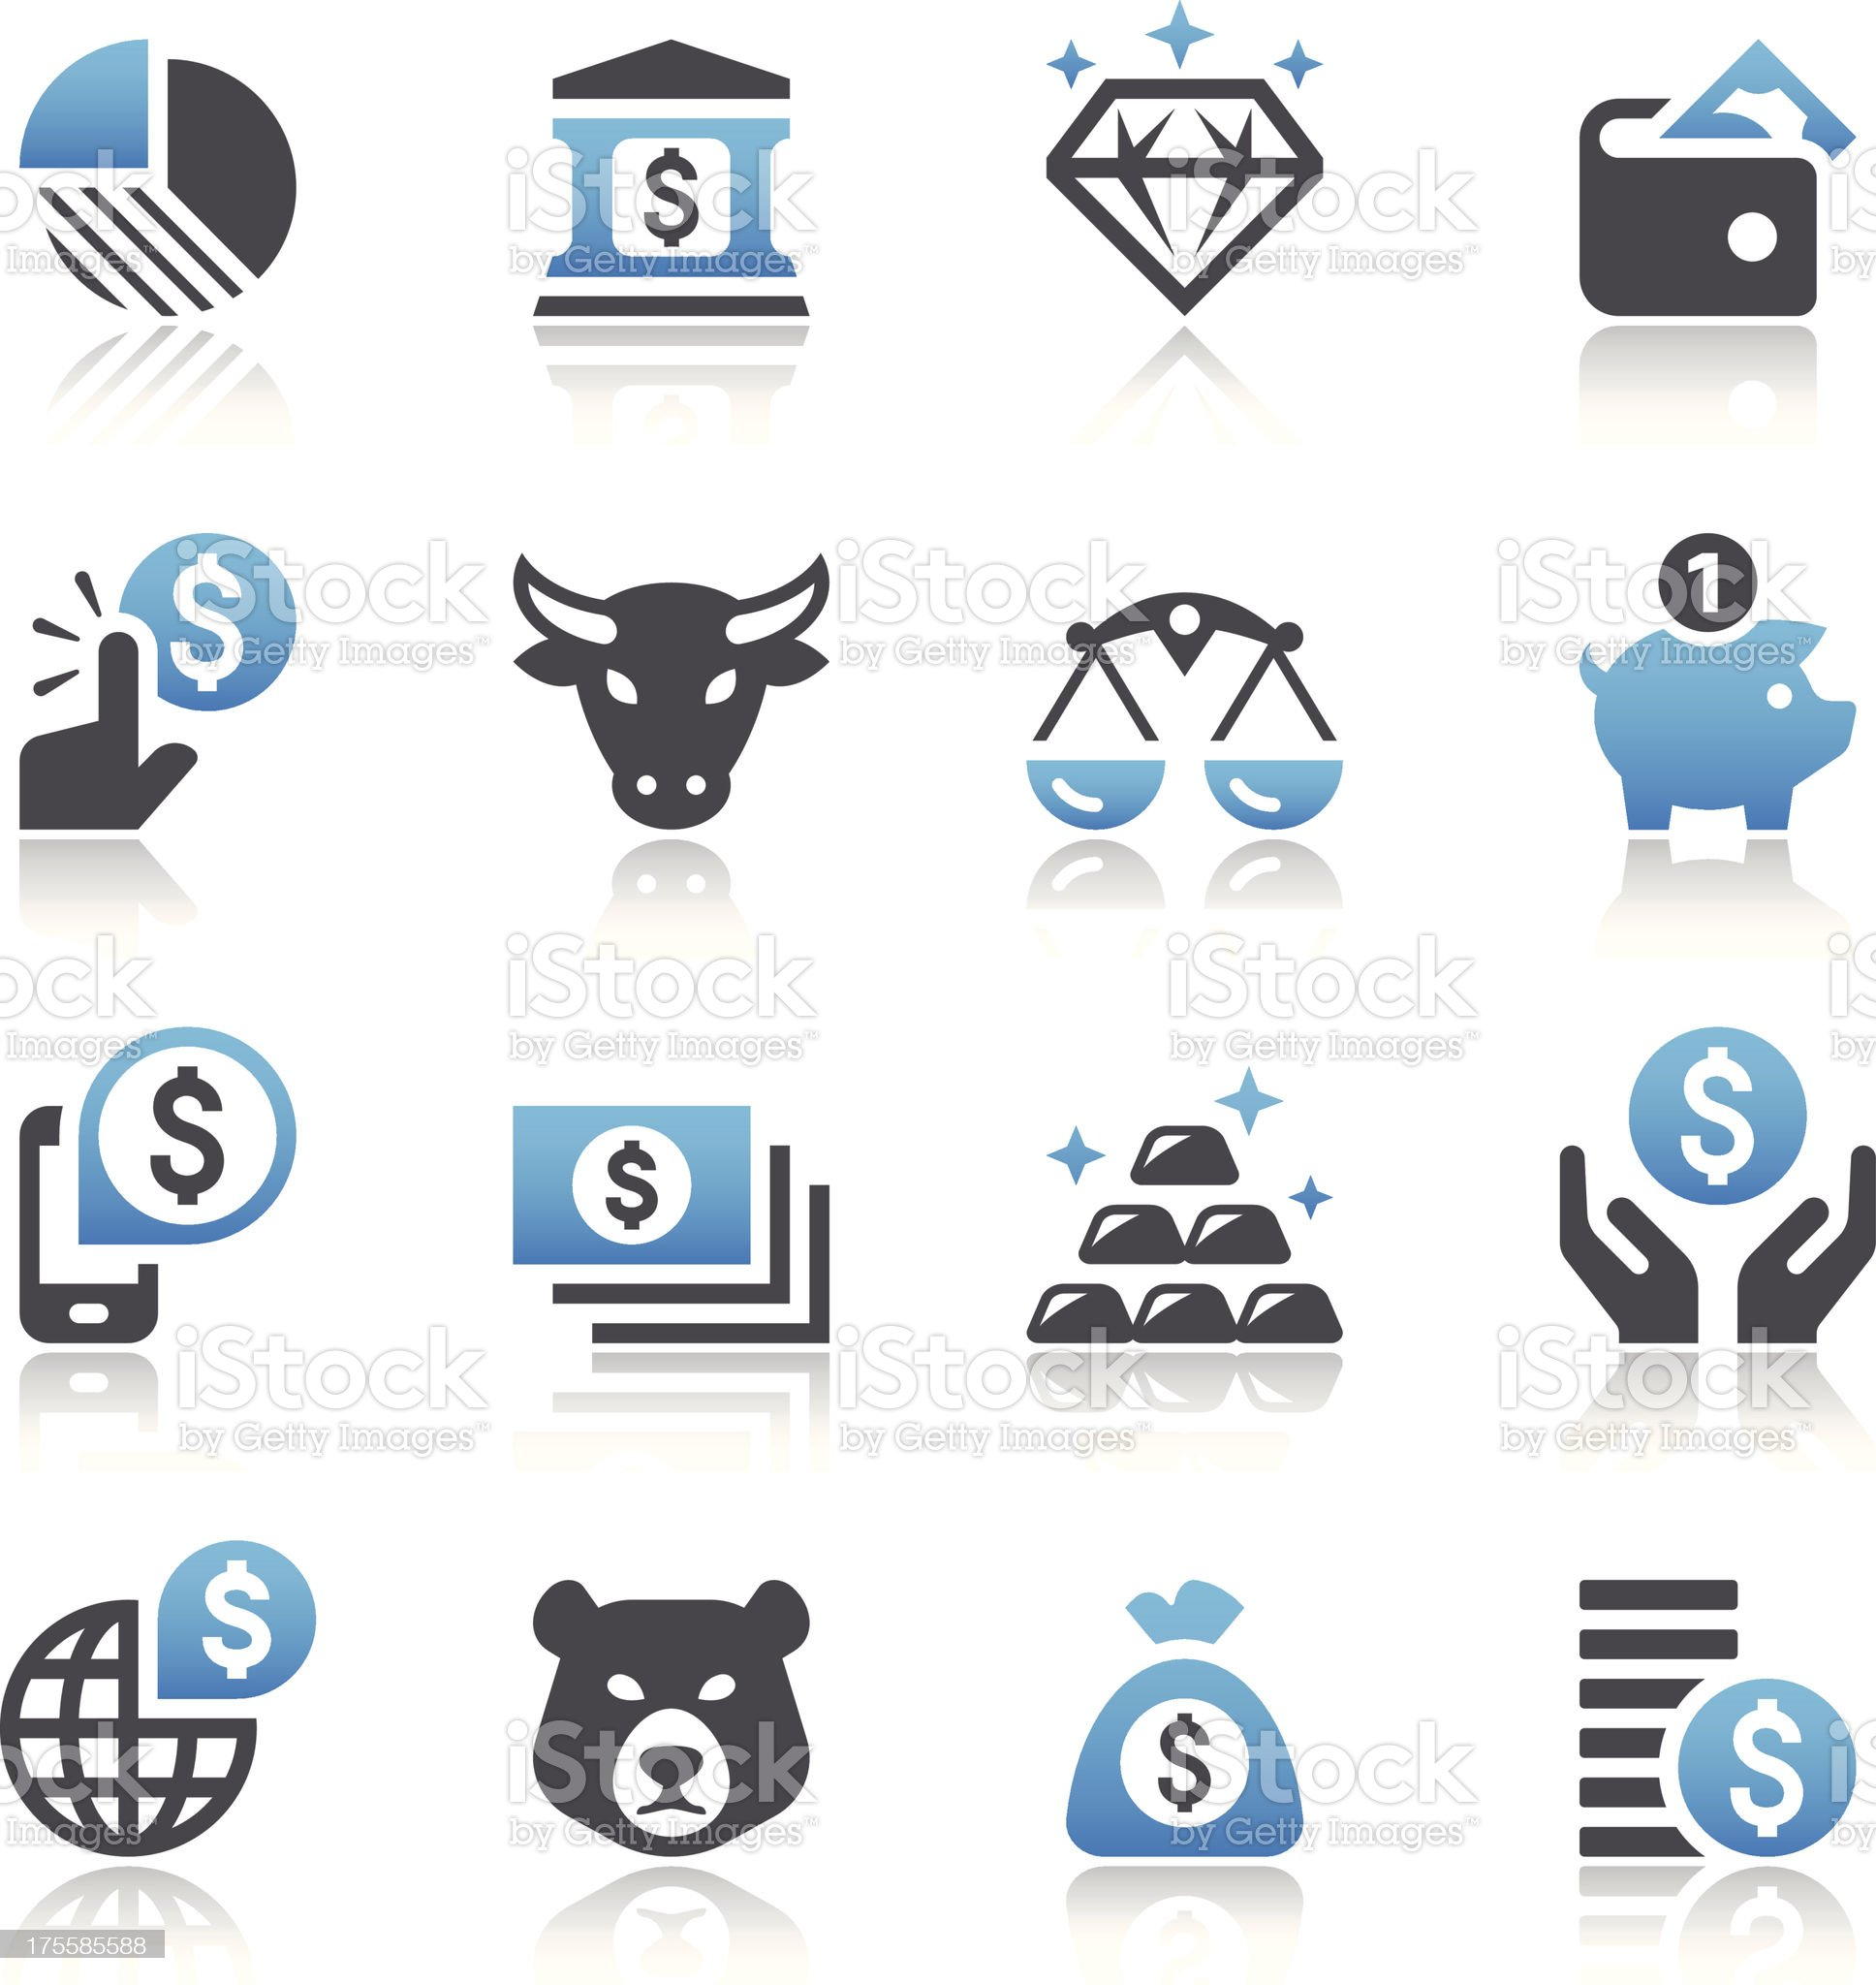 Finance & Money Icons royalty-free stock vector art